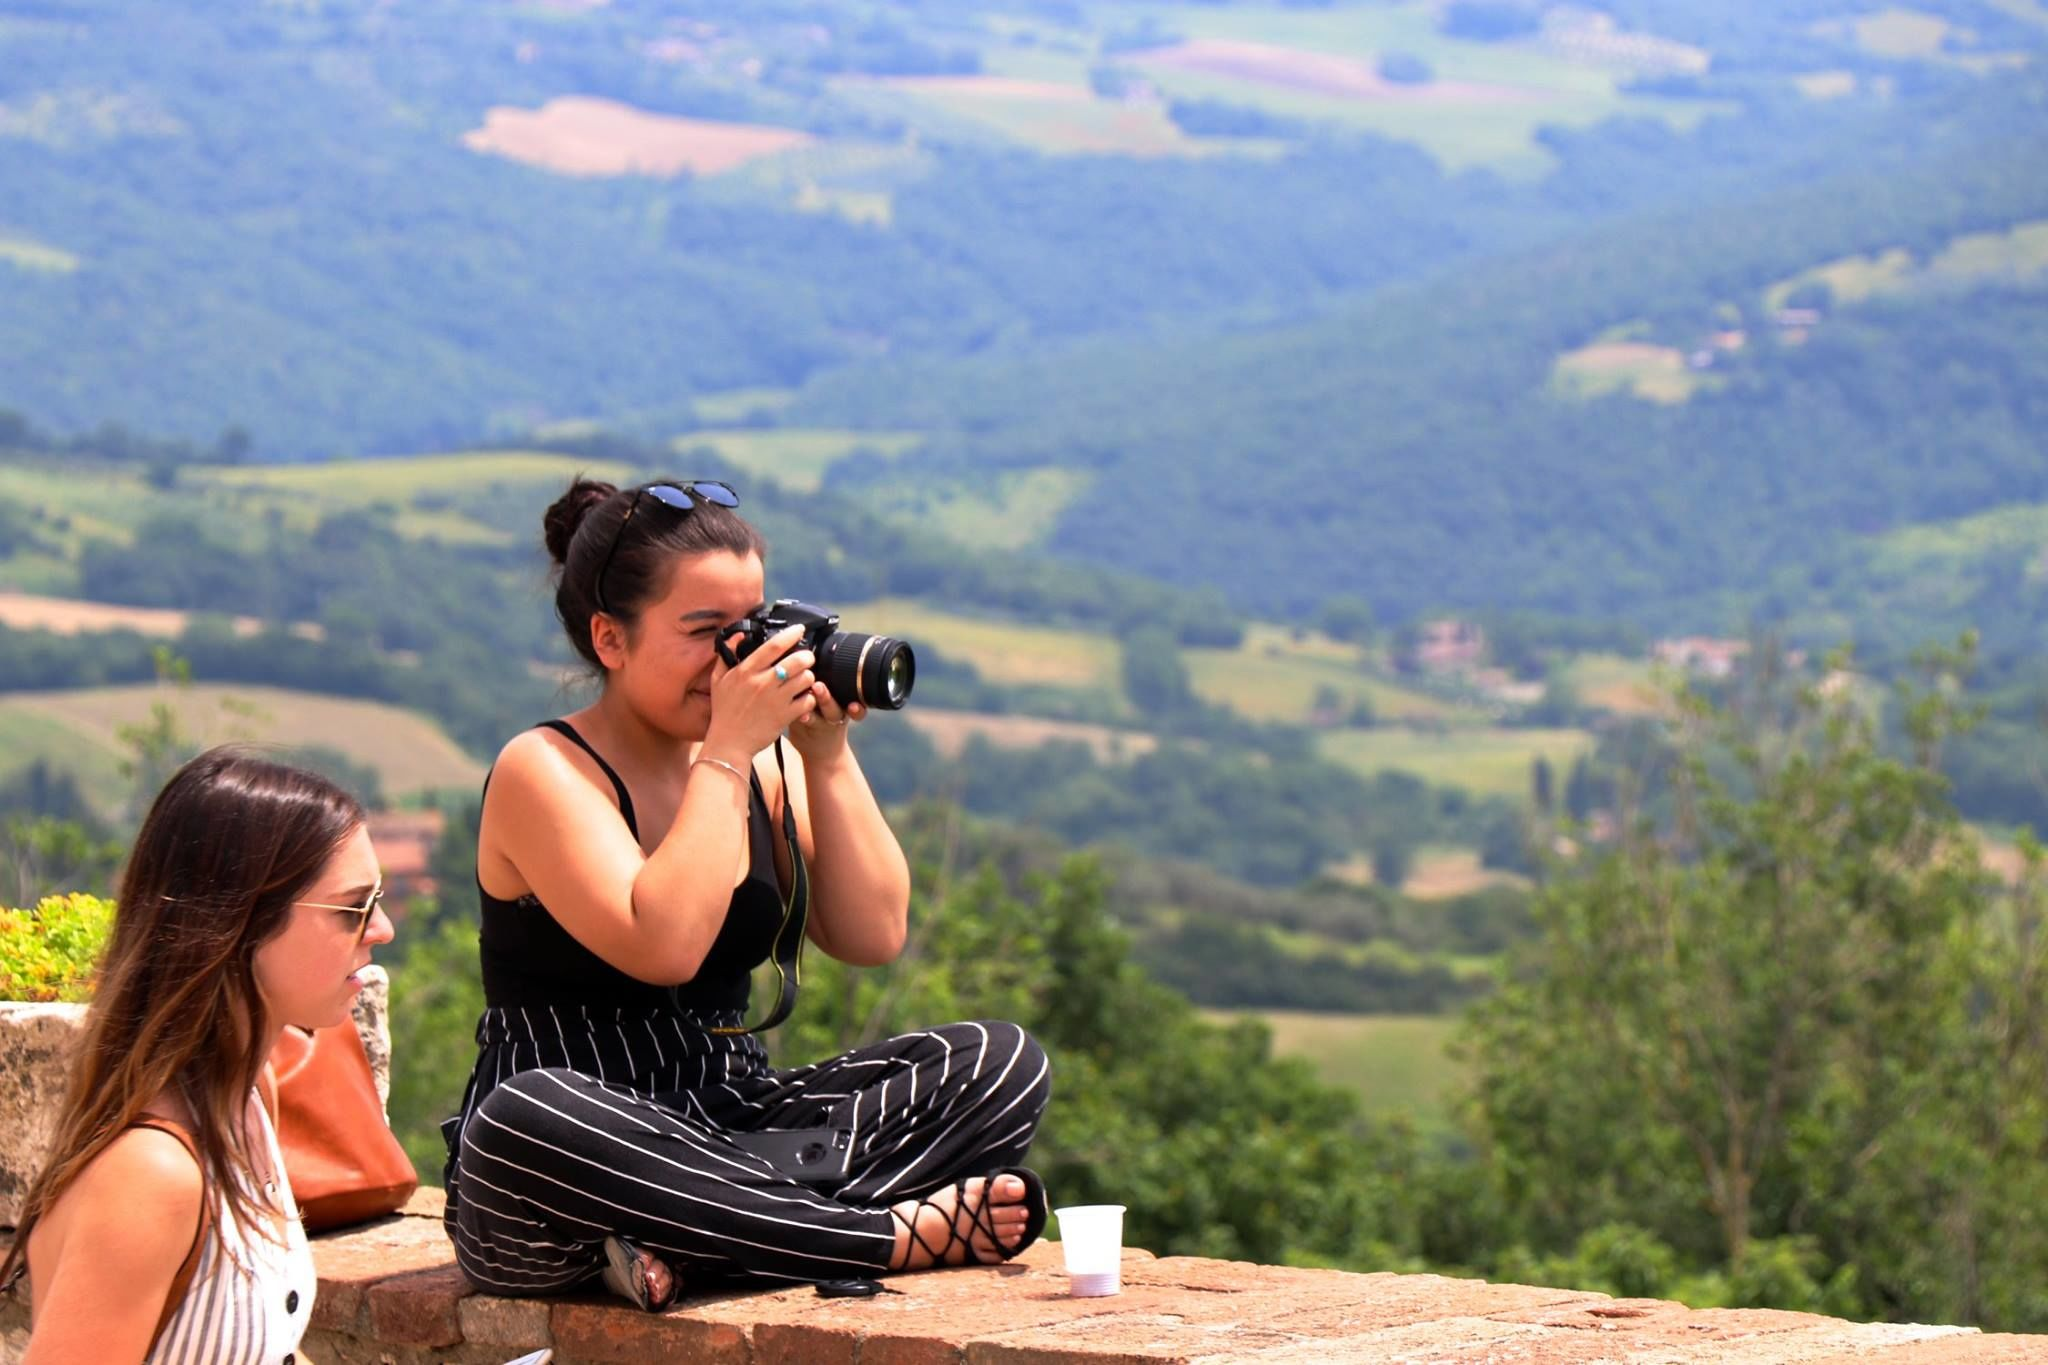 Female student sitting on ledge taking a photo, with another female student to her left. Italian countryside scenery in background.